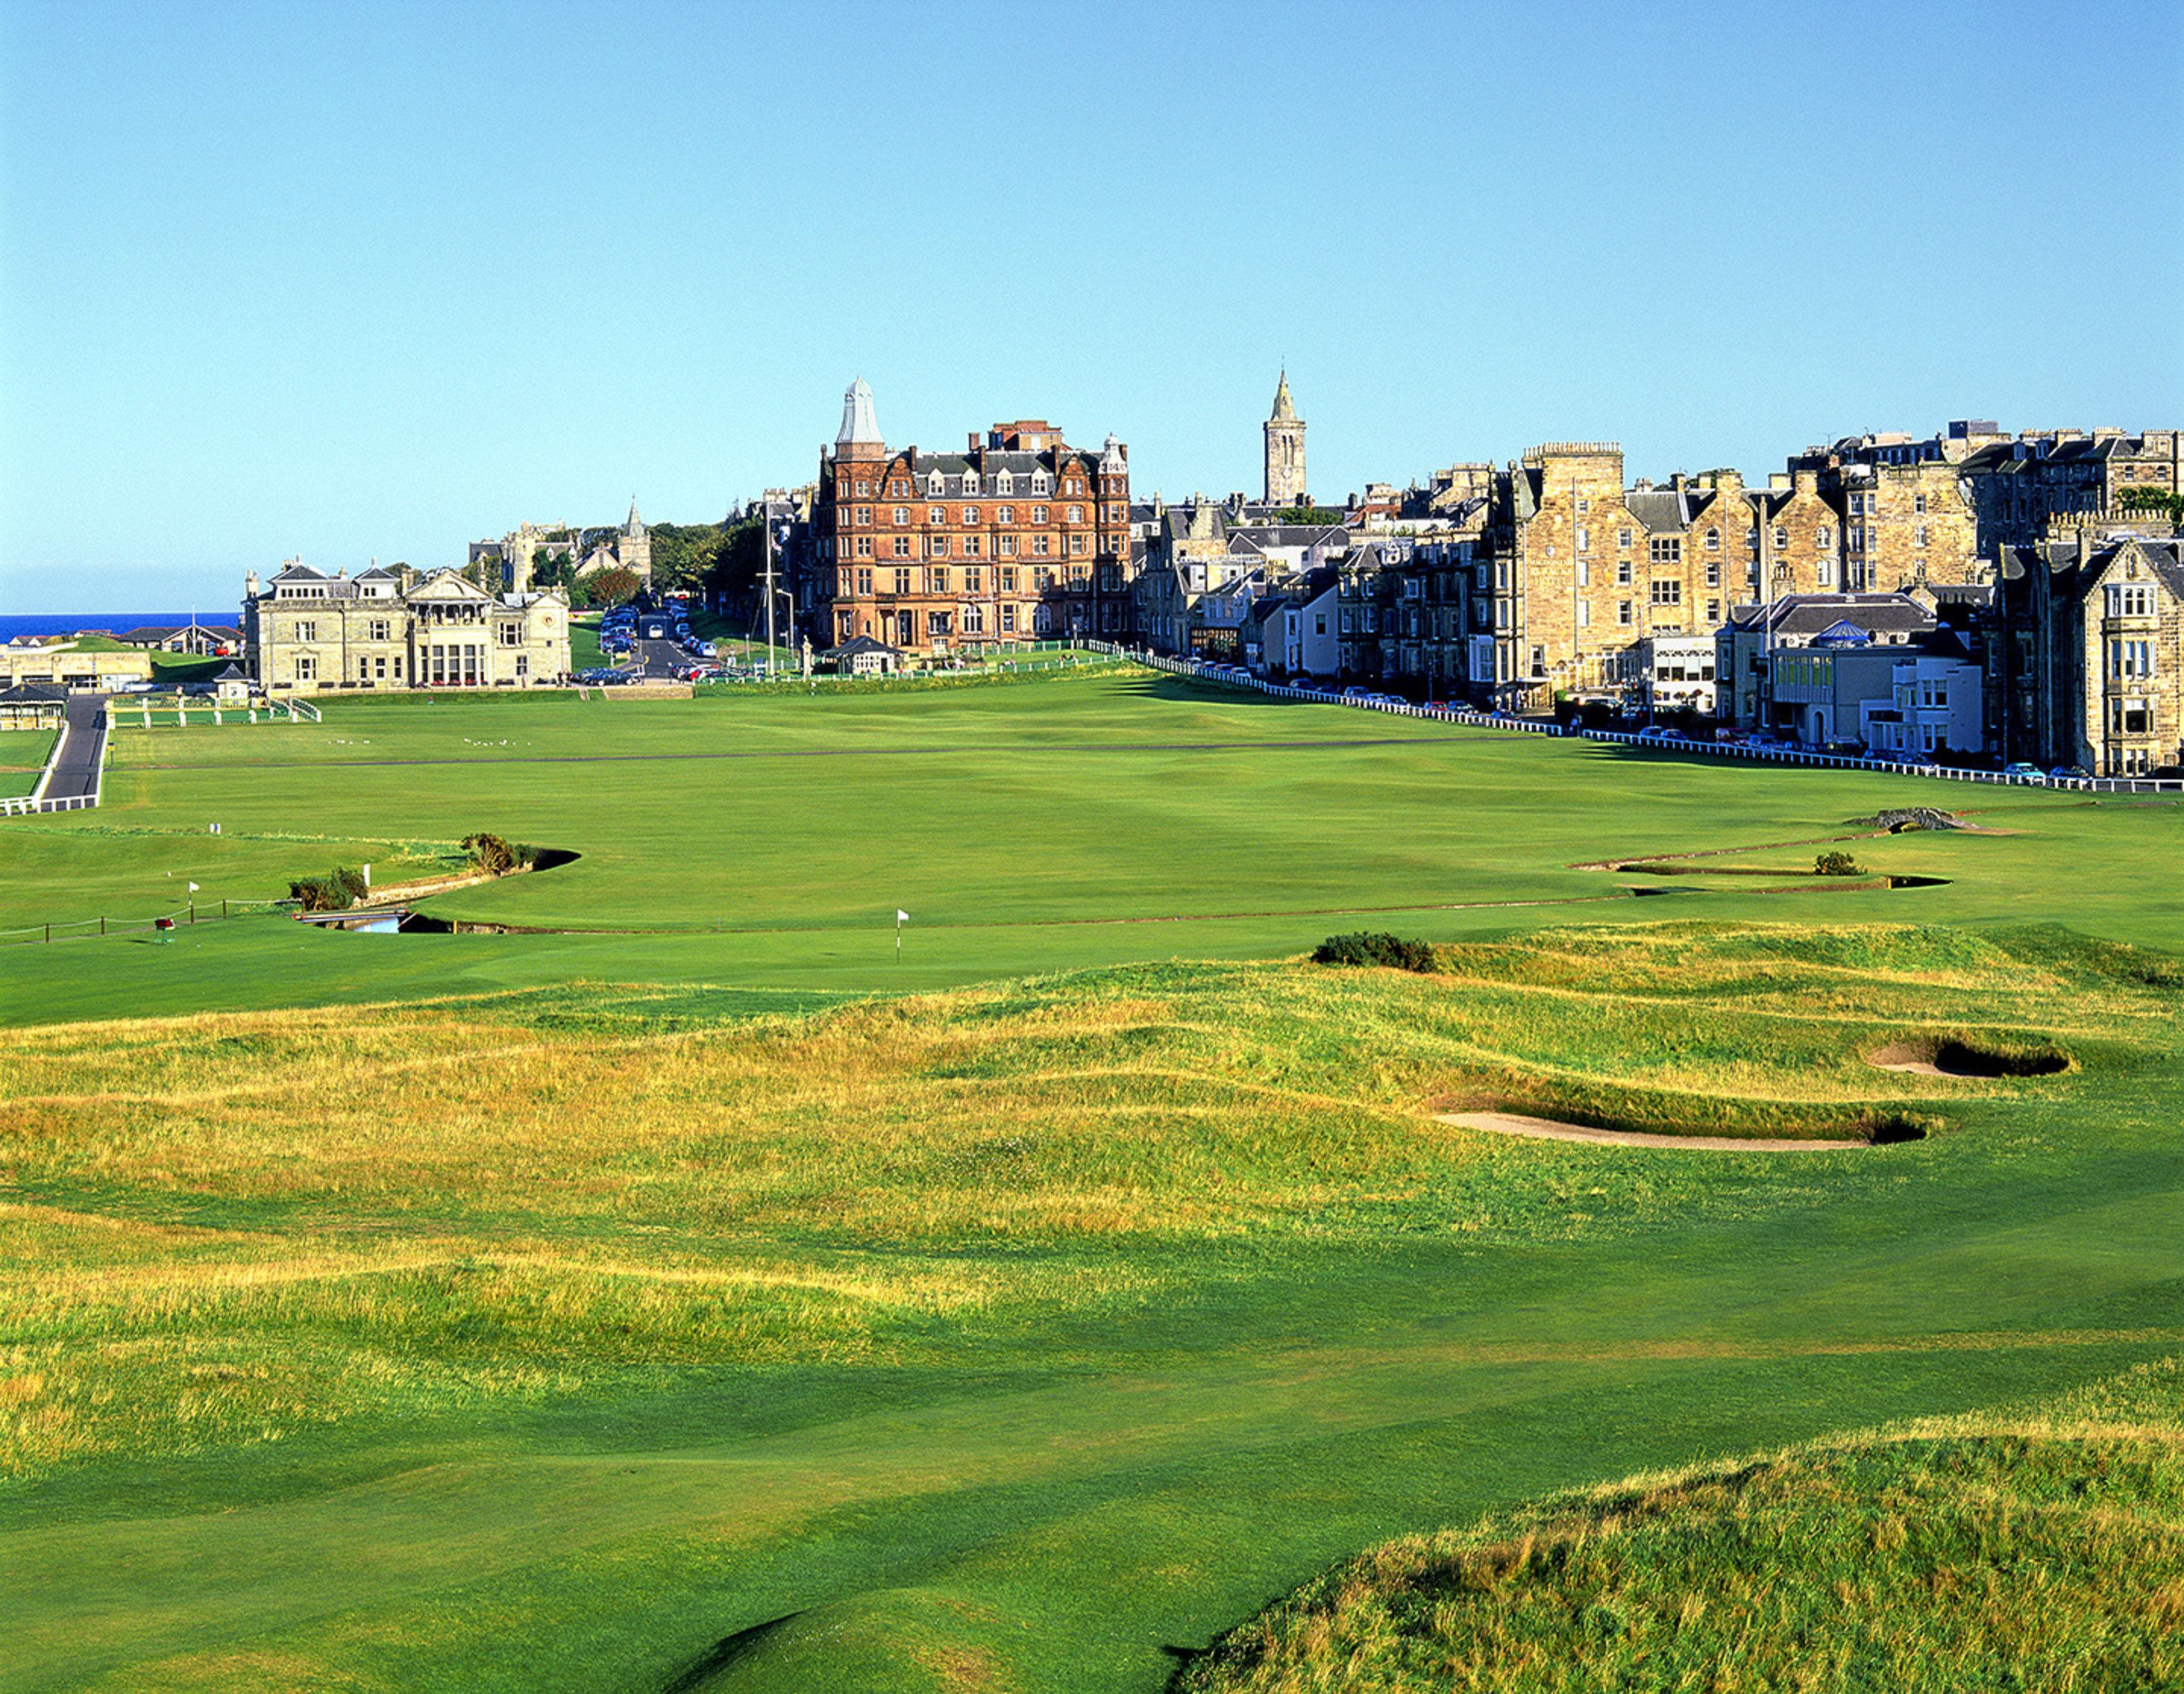 1st & 18th Holes, The Old Course at St. Andrews